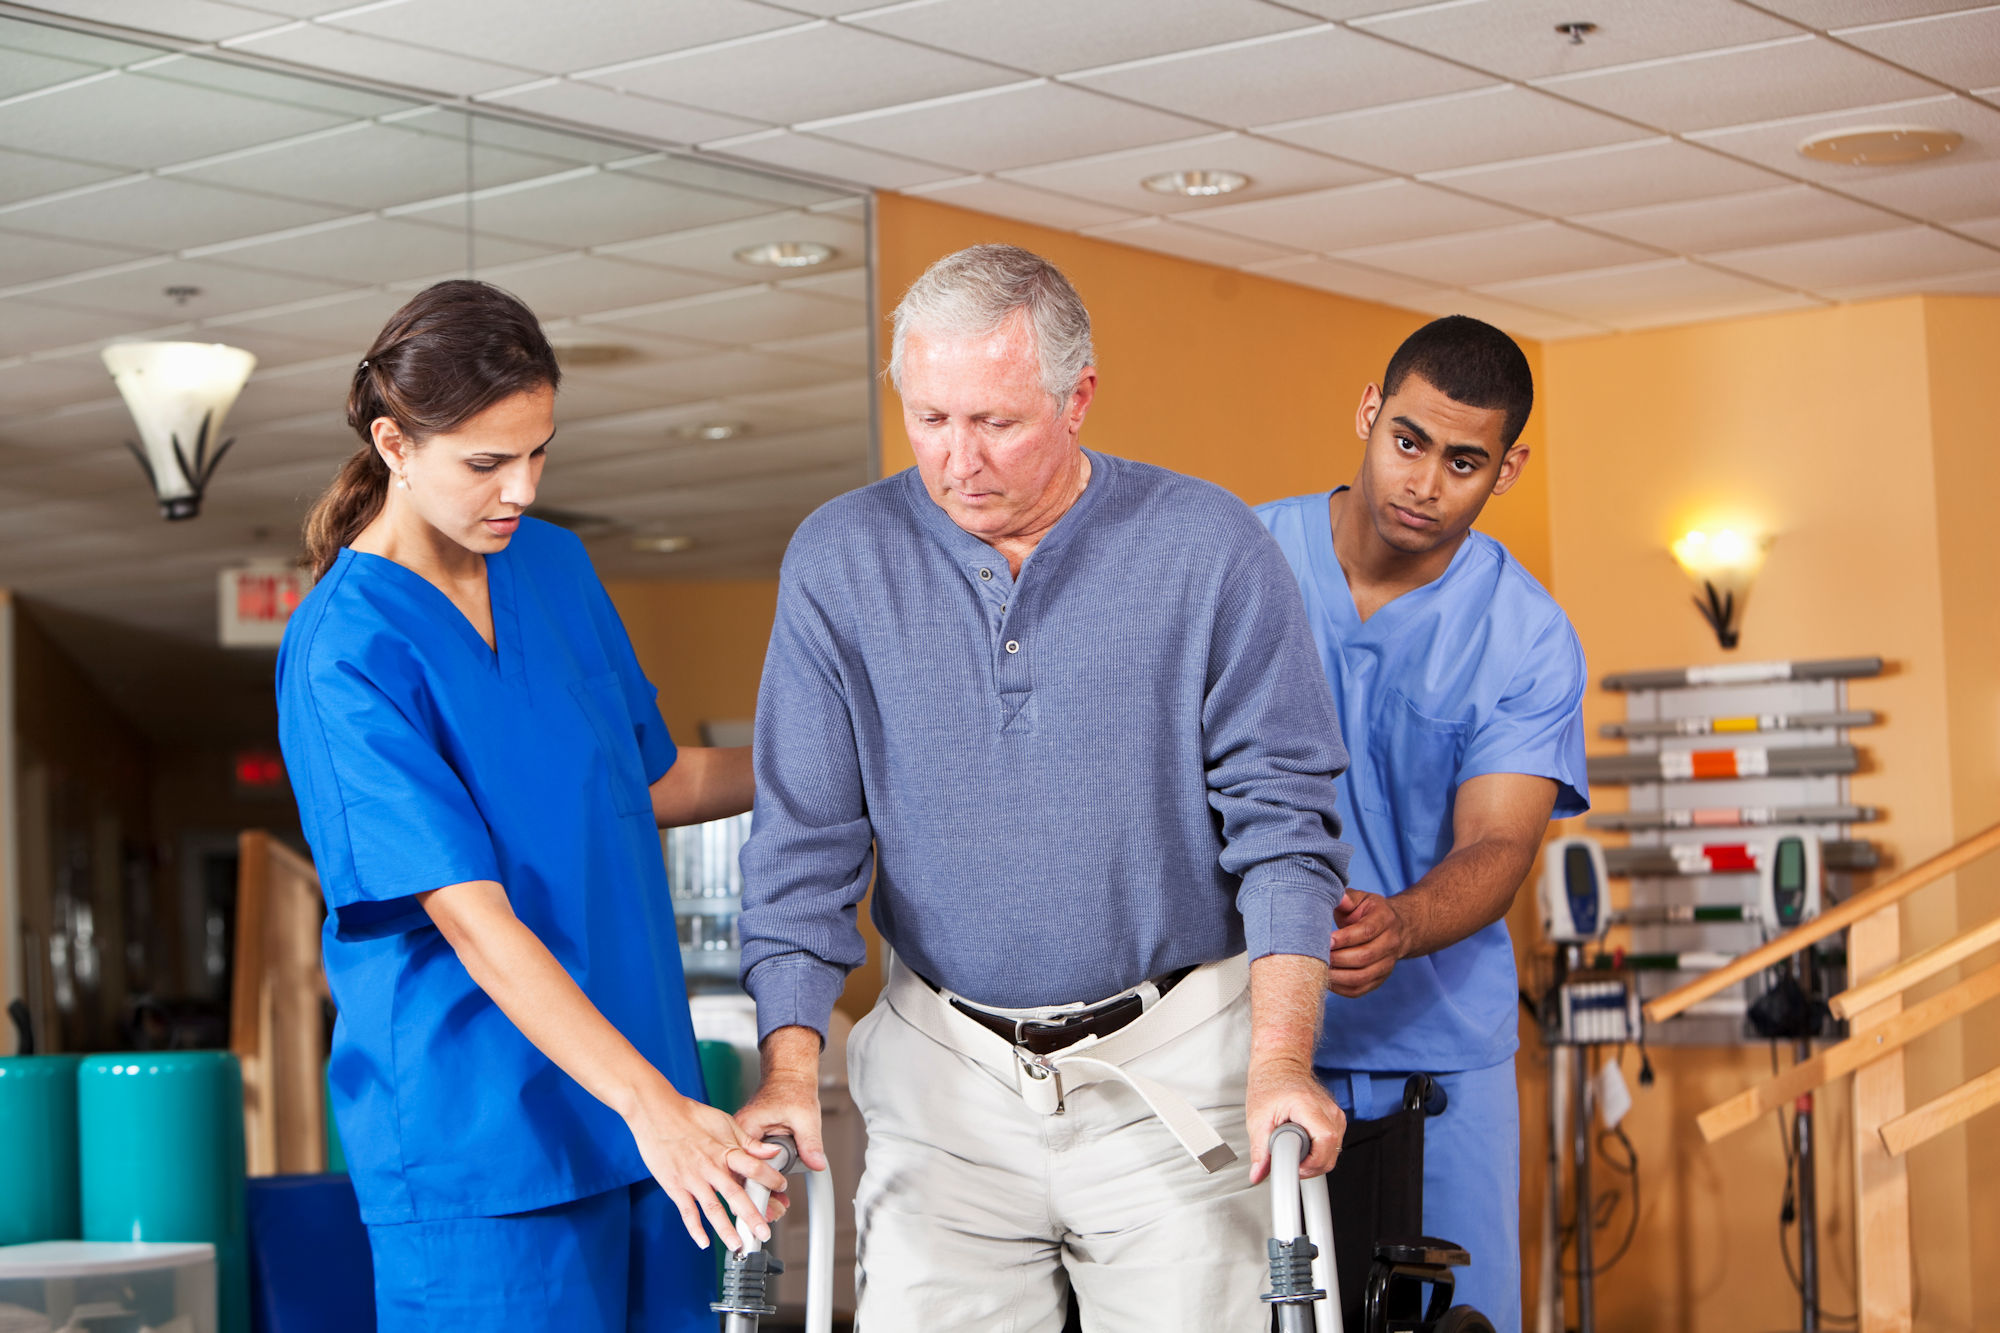 Fredericksburg Health And Rehab Personalized Care Is At The Heart Of Everything We Do